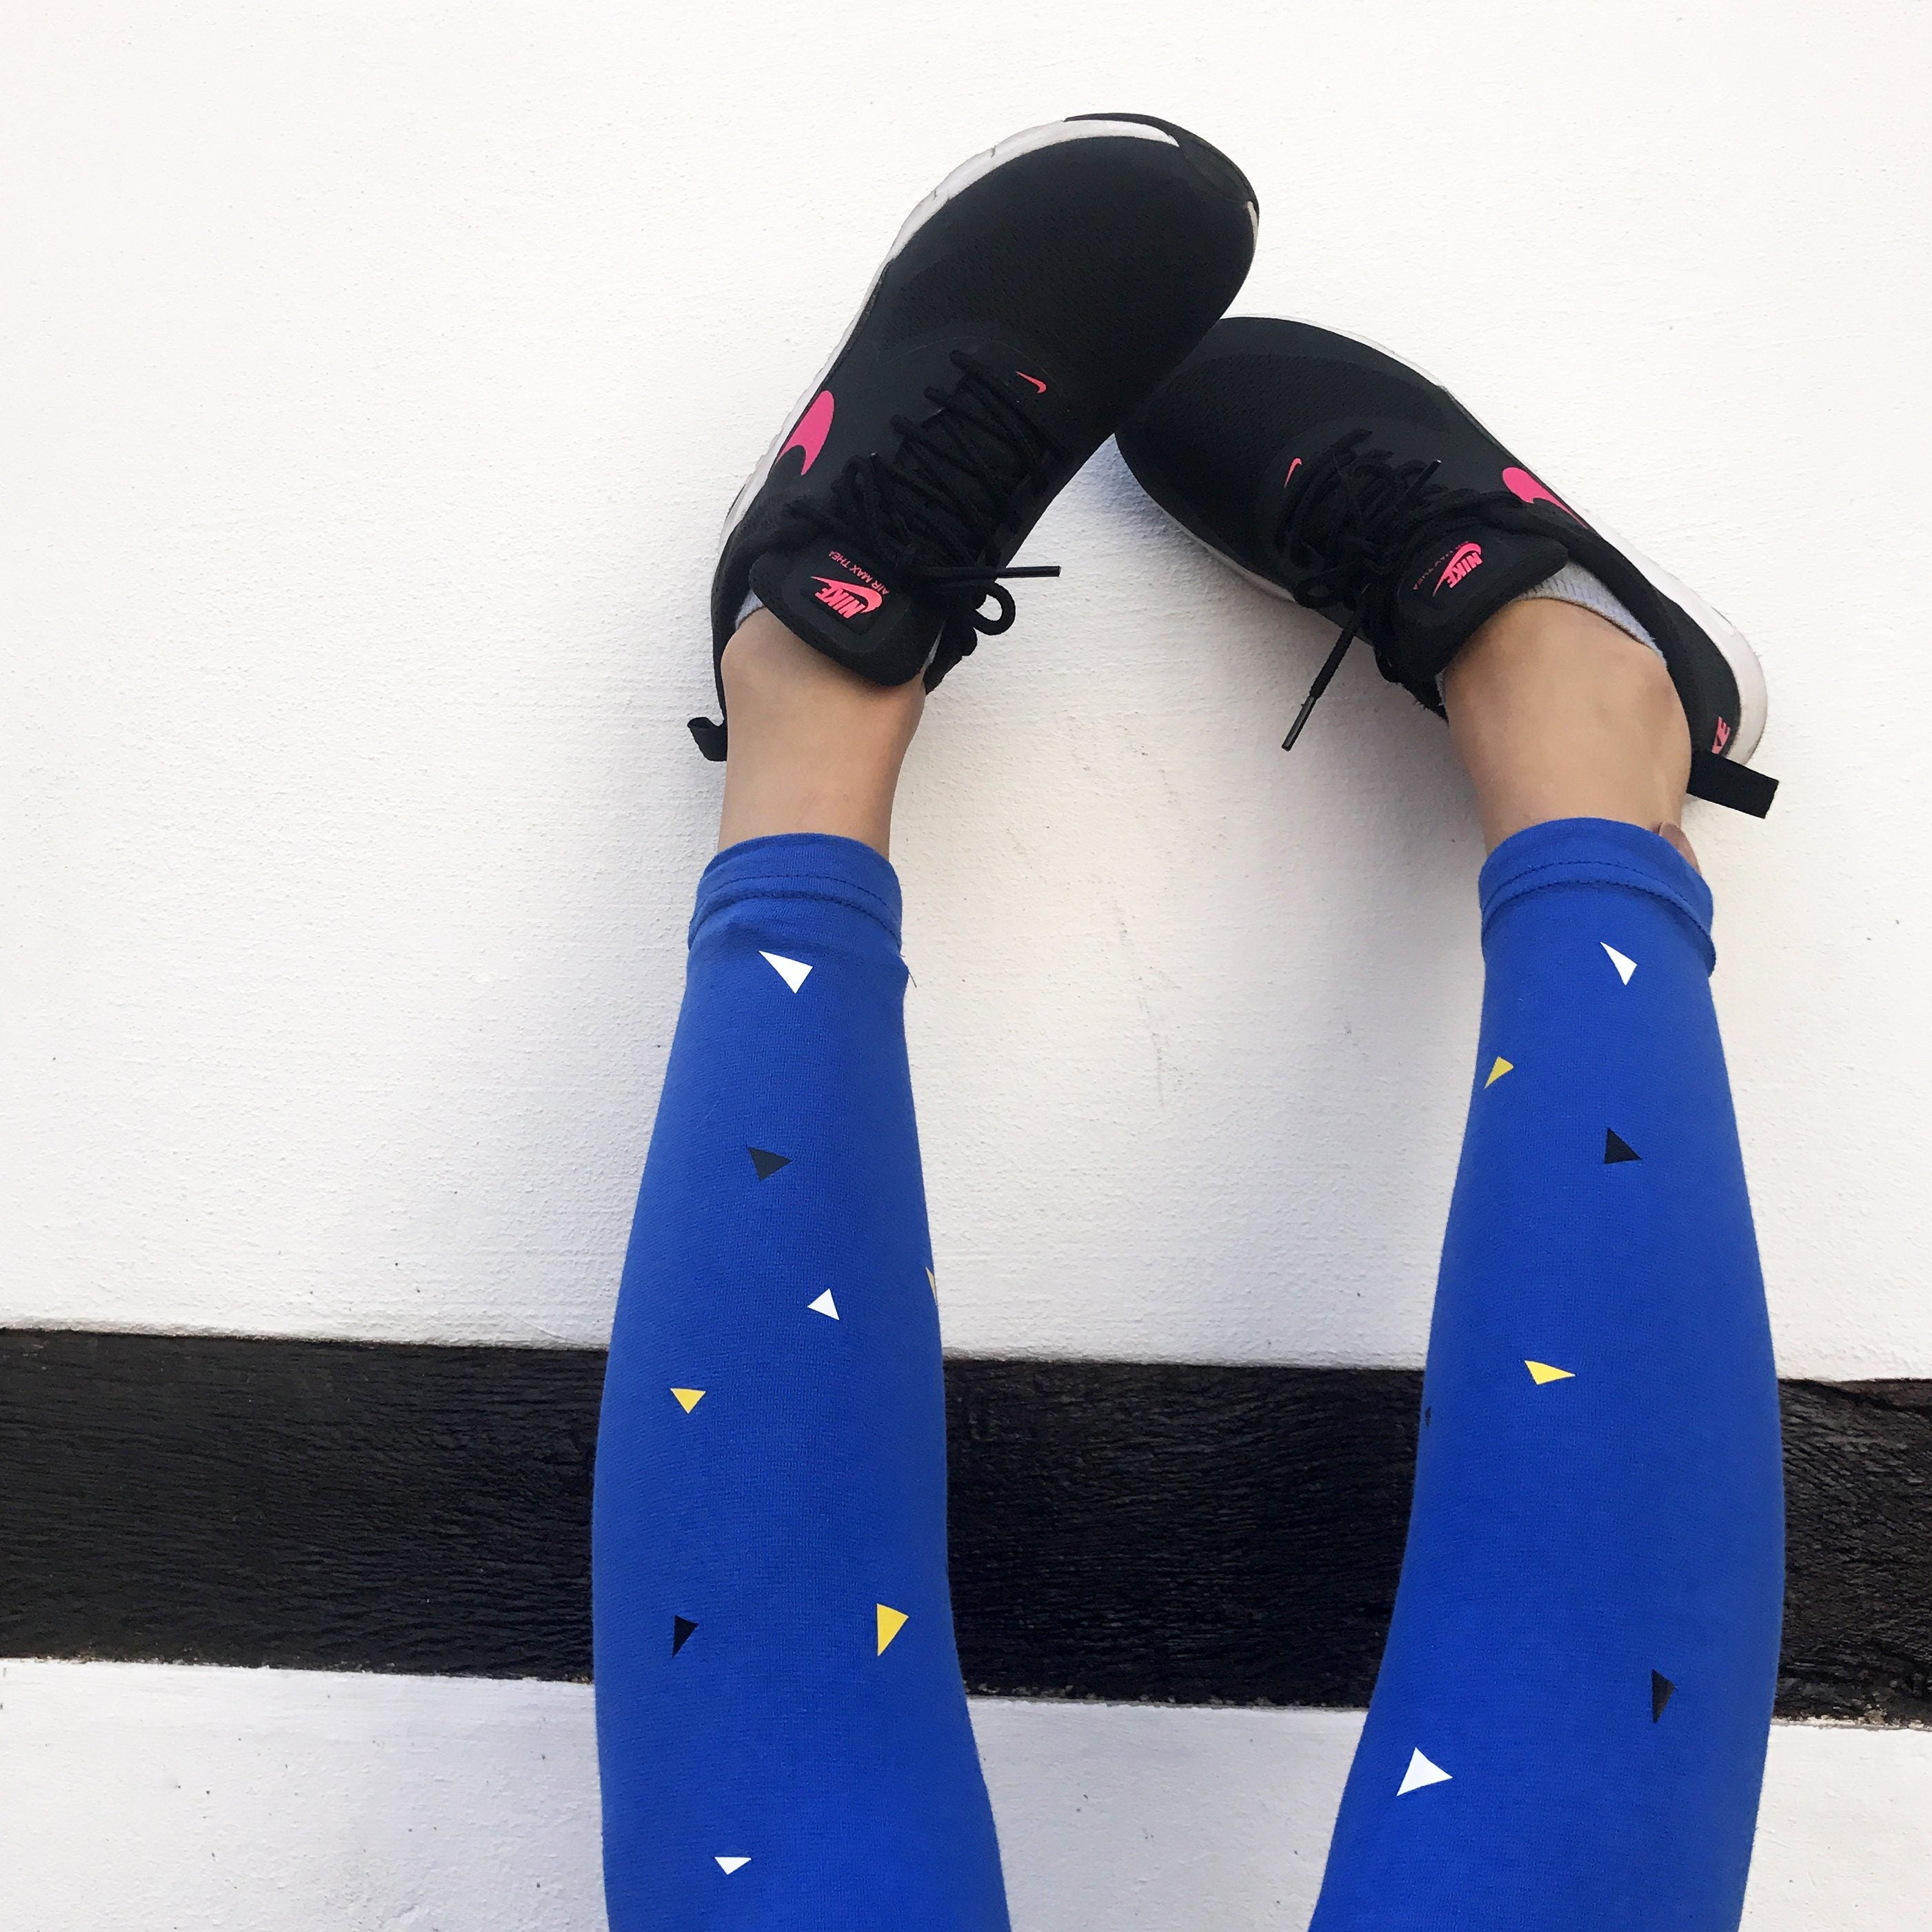 Leggings - Triangles Leggings, Orange Blue